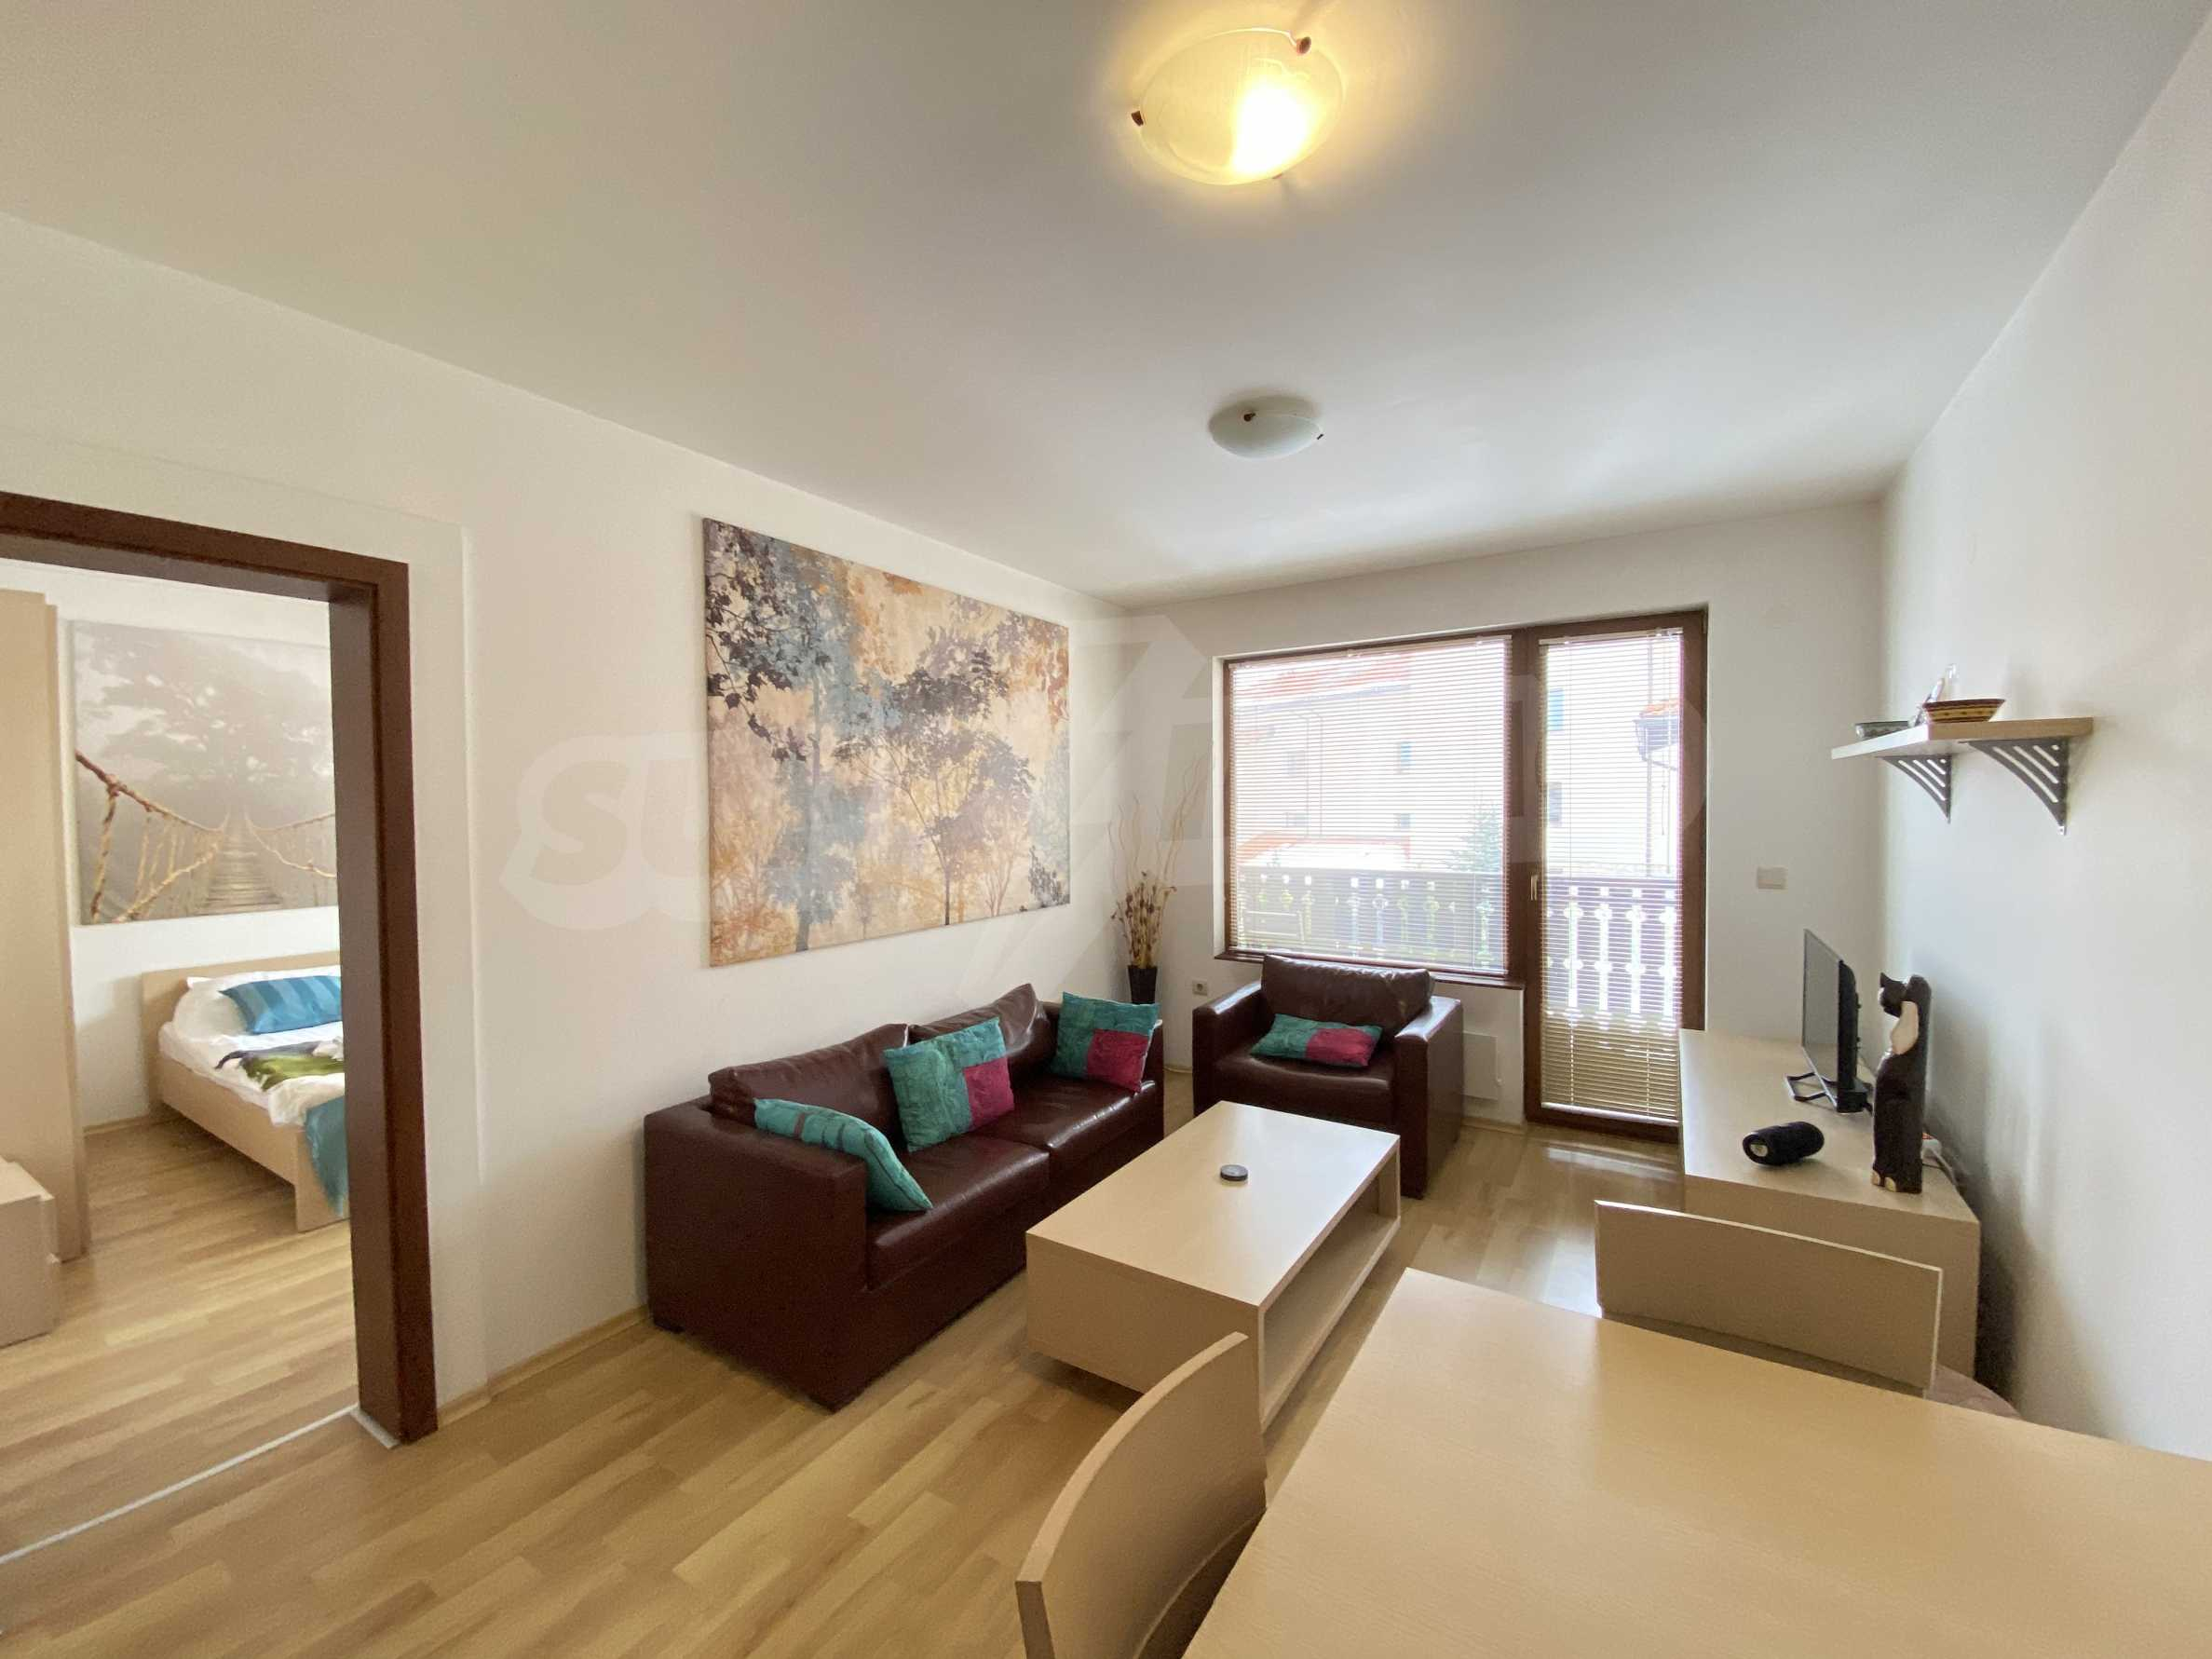 Furnished two-bedroom apartment located in a gated complex, just meters from the ski lift in Bansko 2